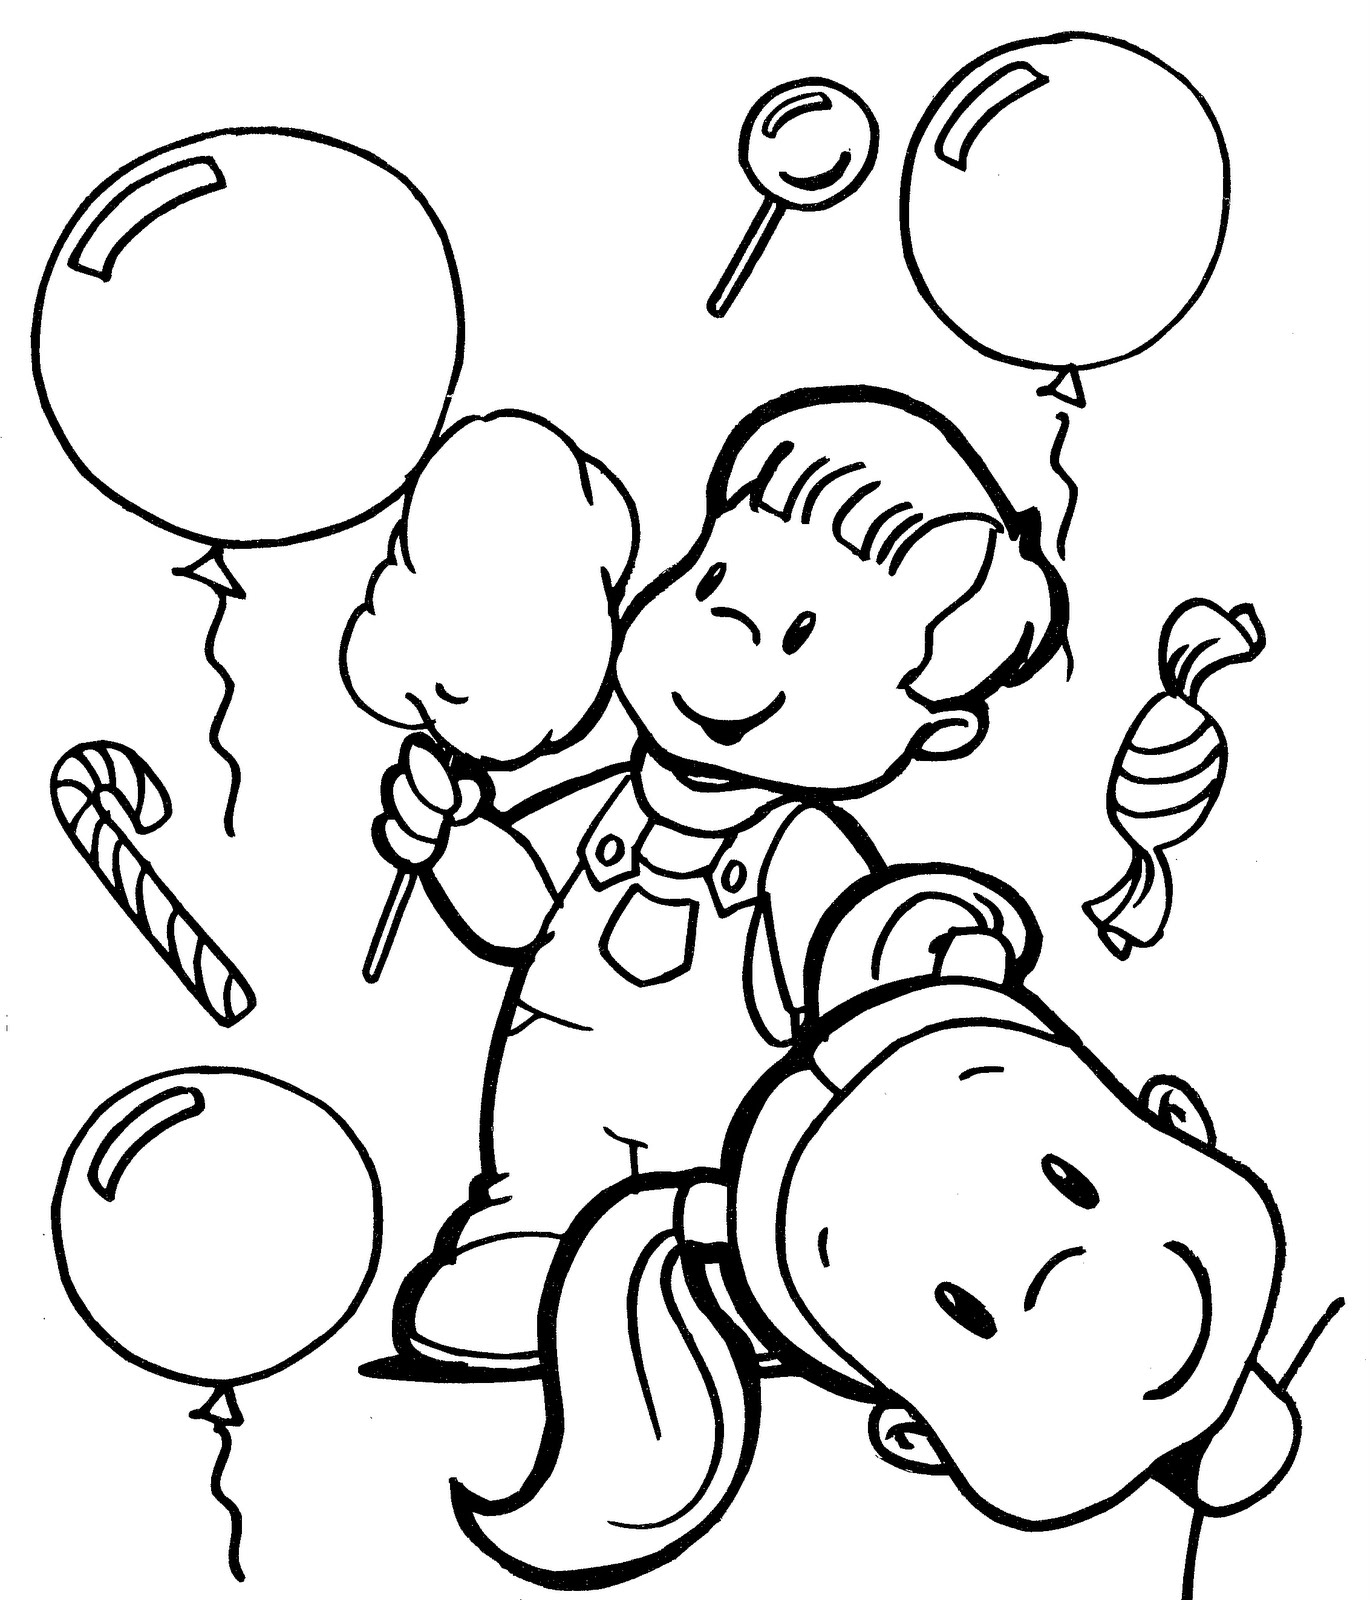 1370x1600 Children Day Coloring Pages Of Kids Enjoying Free Coloring Pages